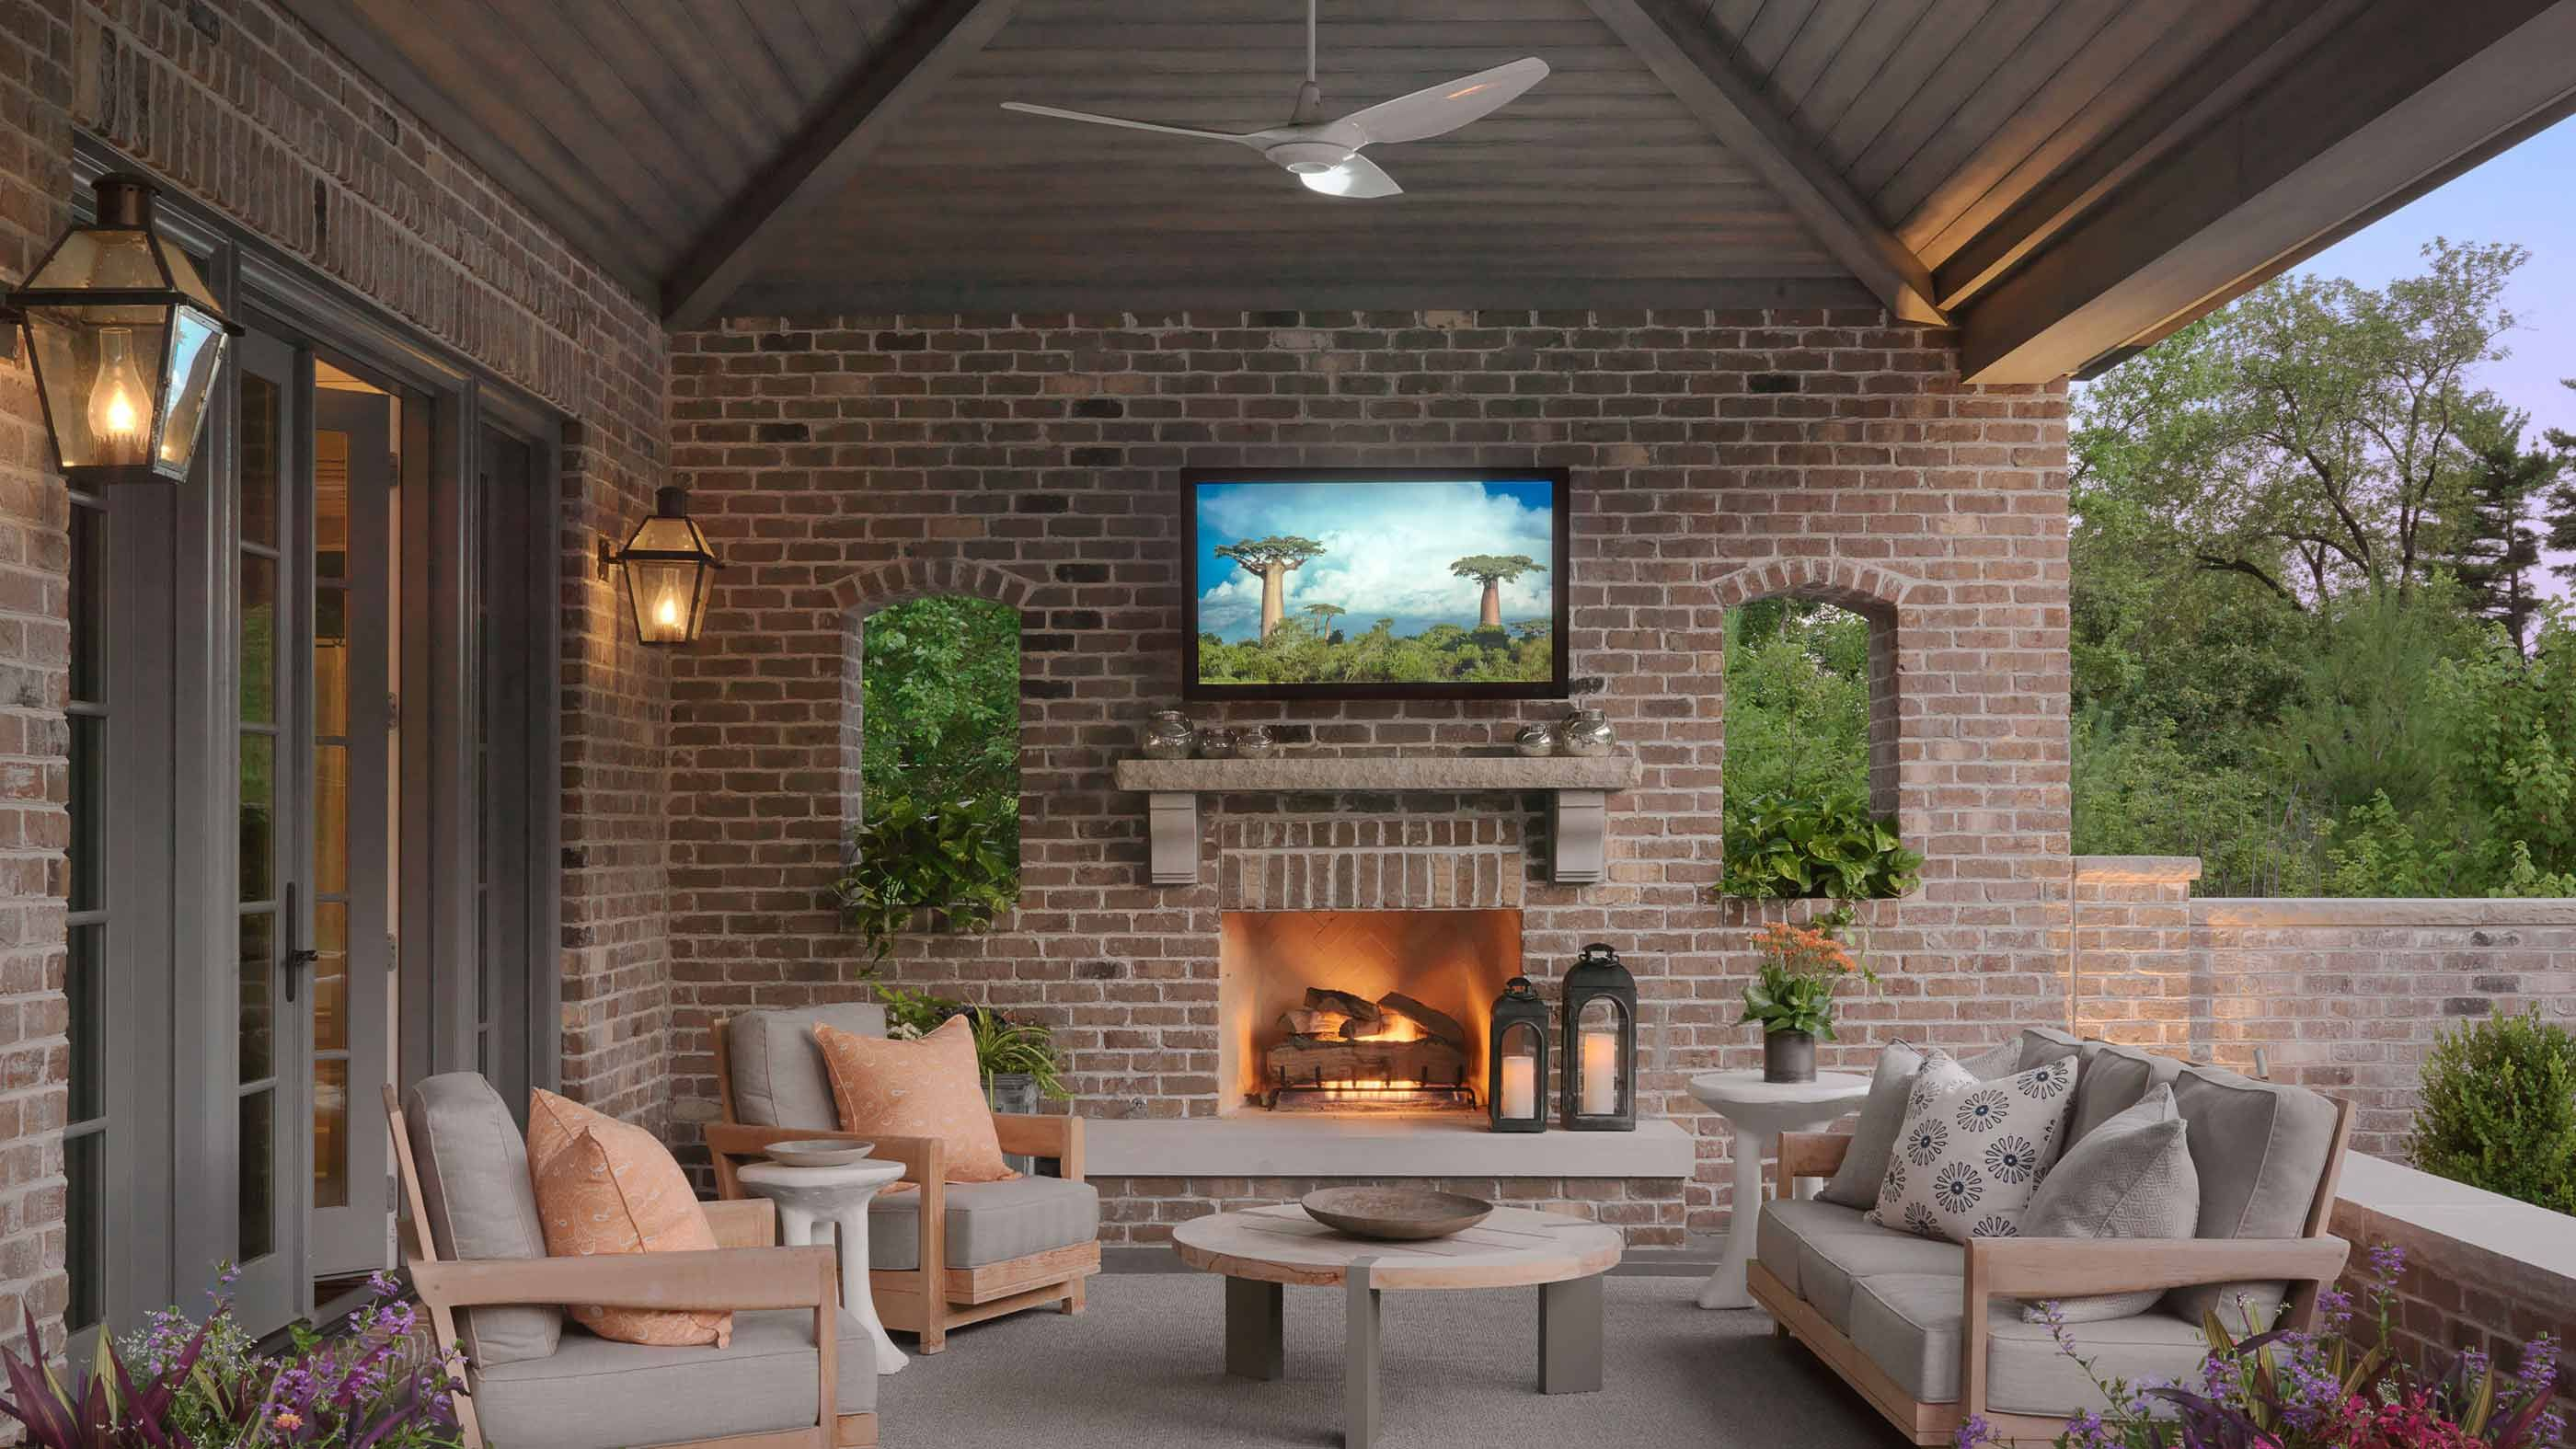 Home Audio Video Austin, TX, smart home automation, Texas home control, patio automation, outdoor entertainment